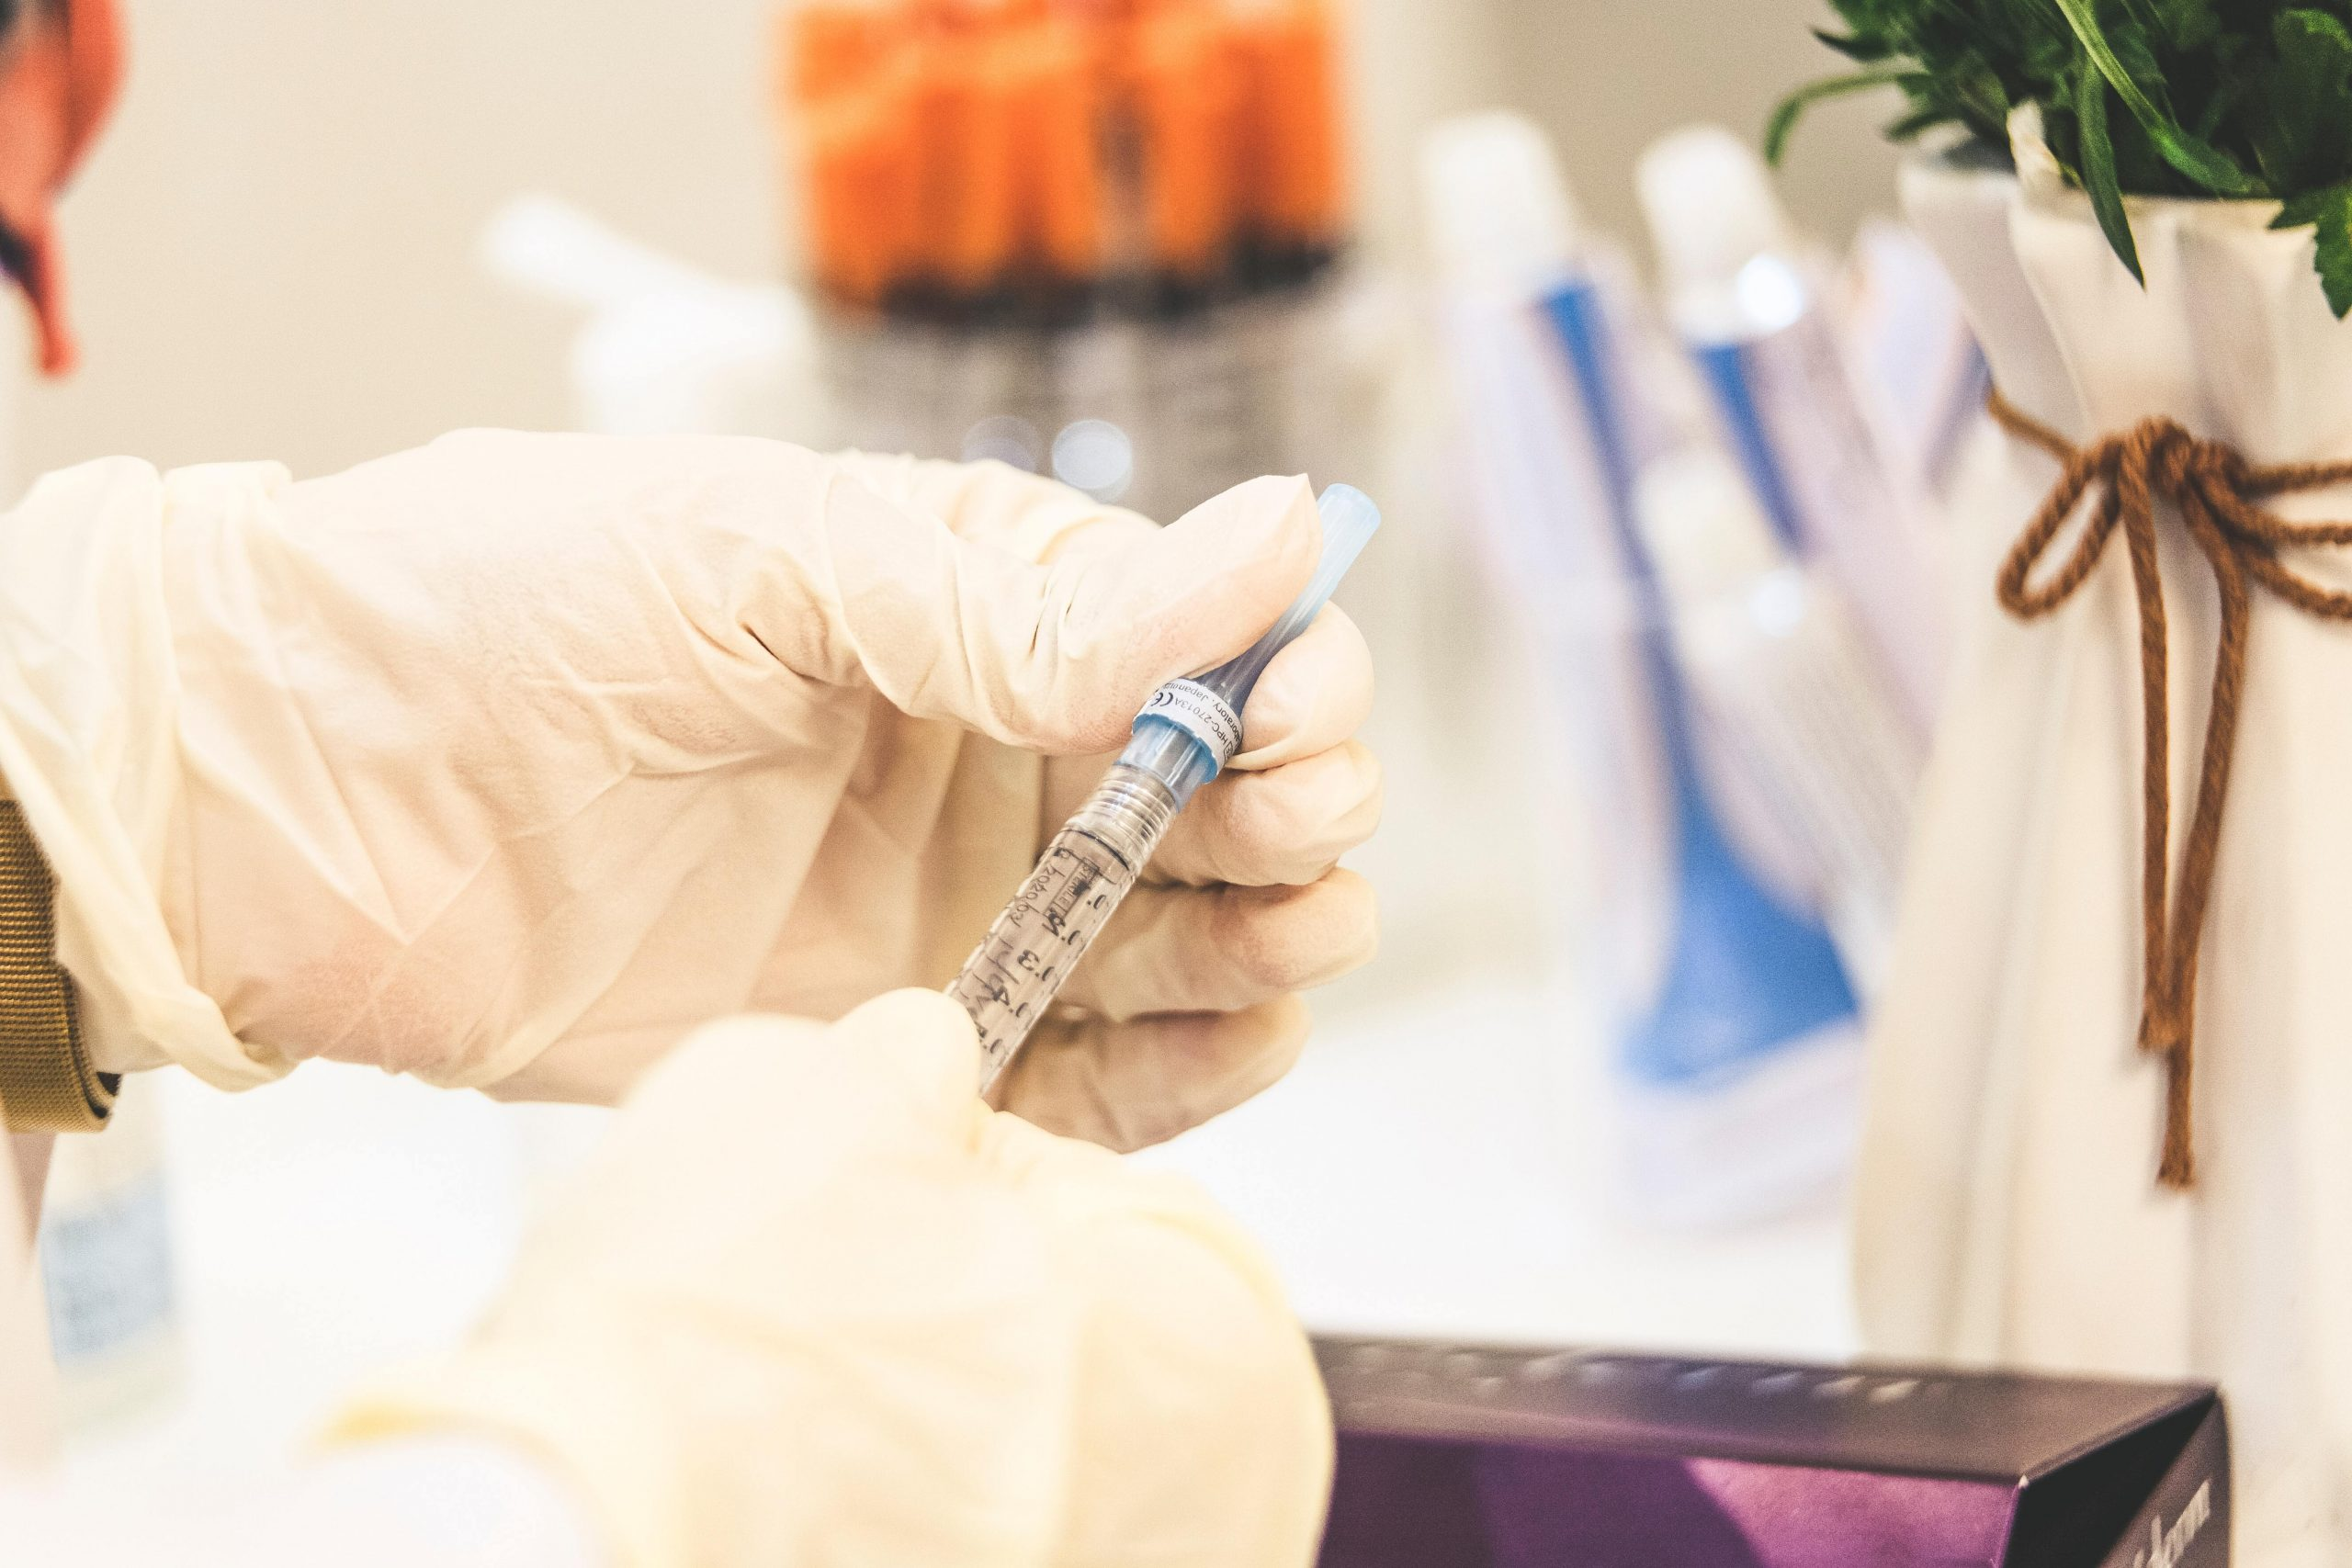 All You Need to Know About Lipotropic Injections (2021)